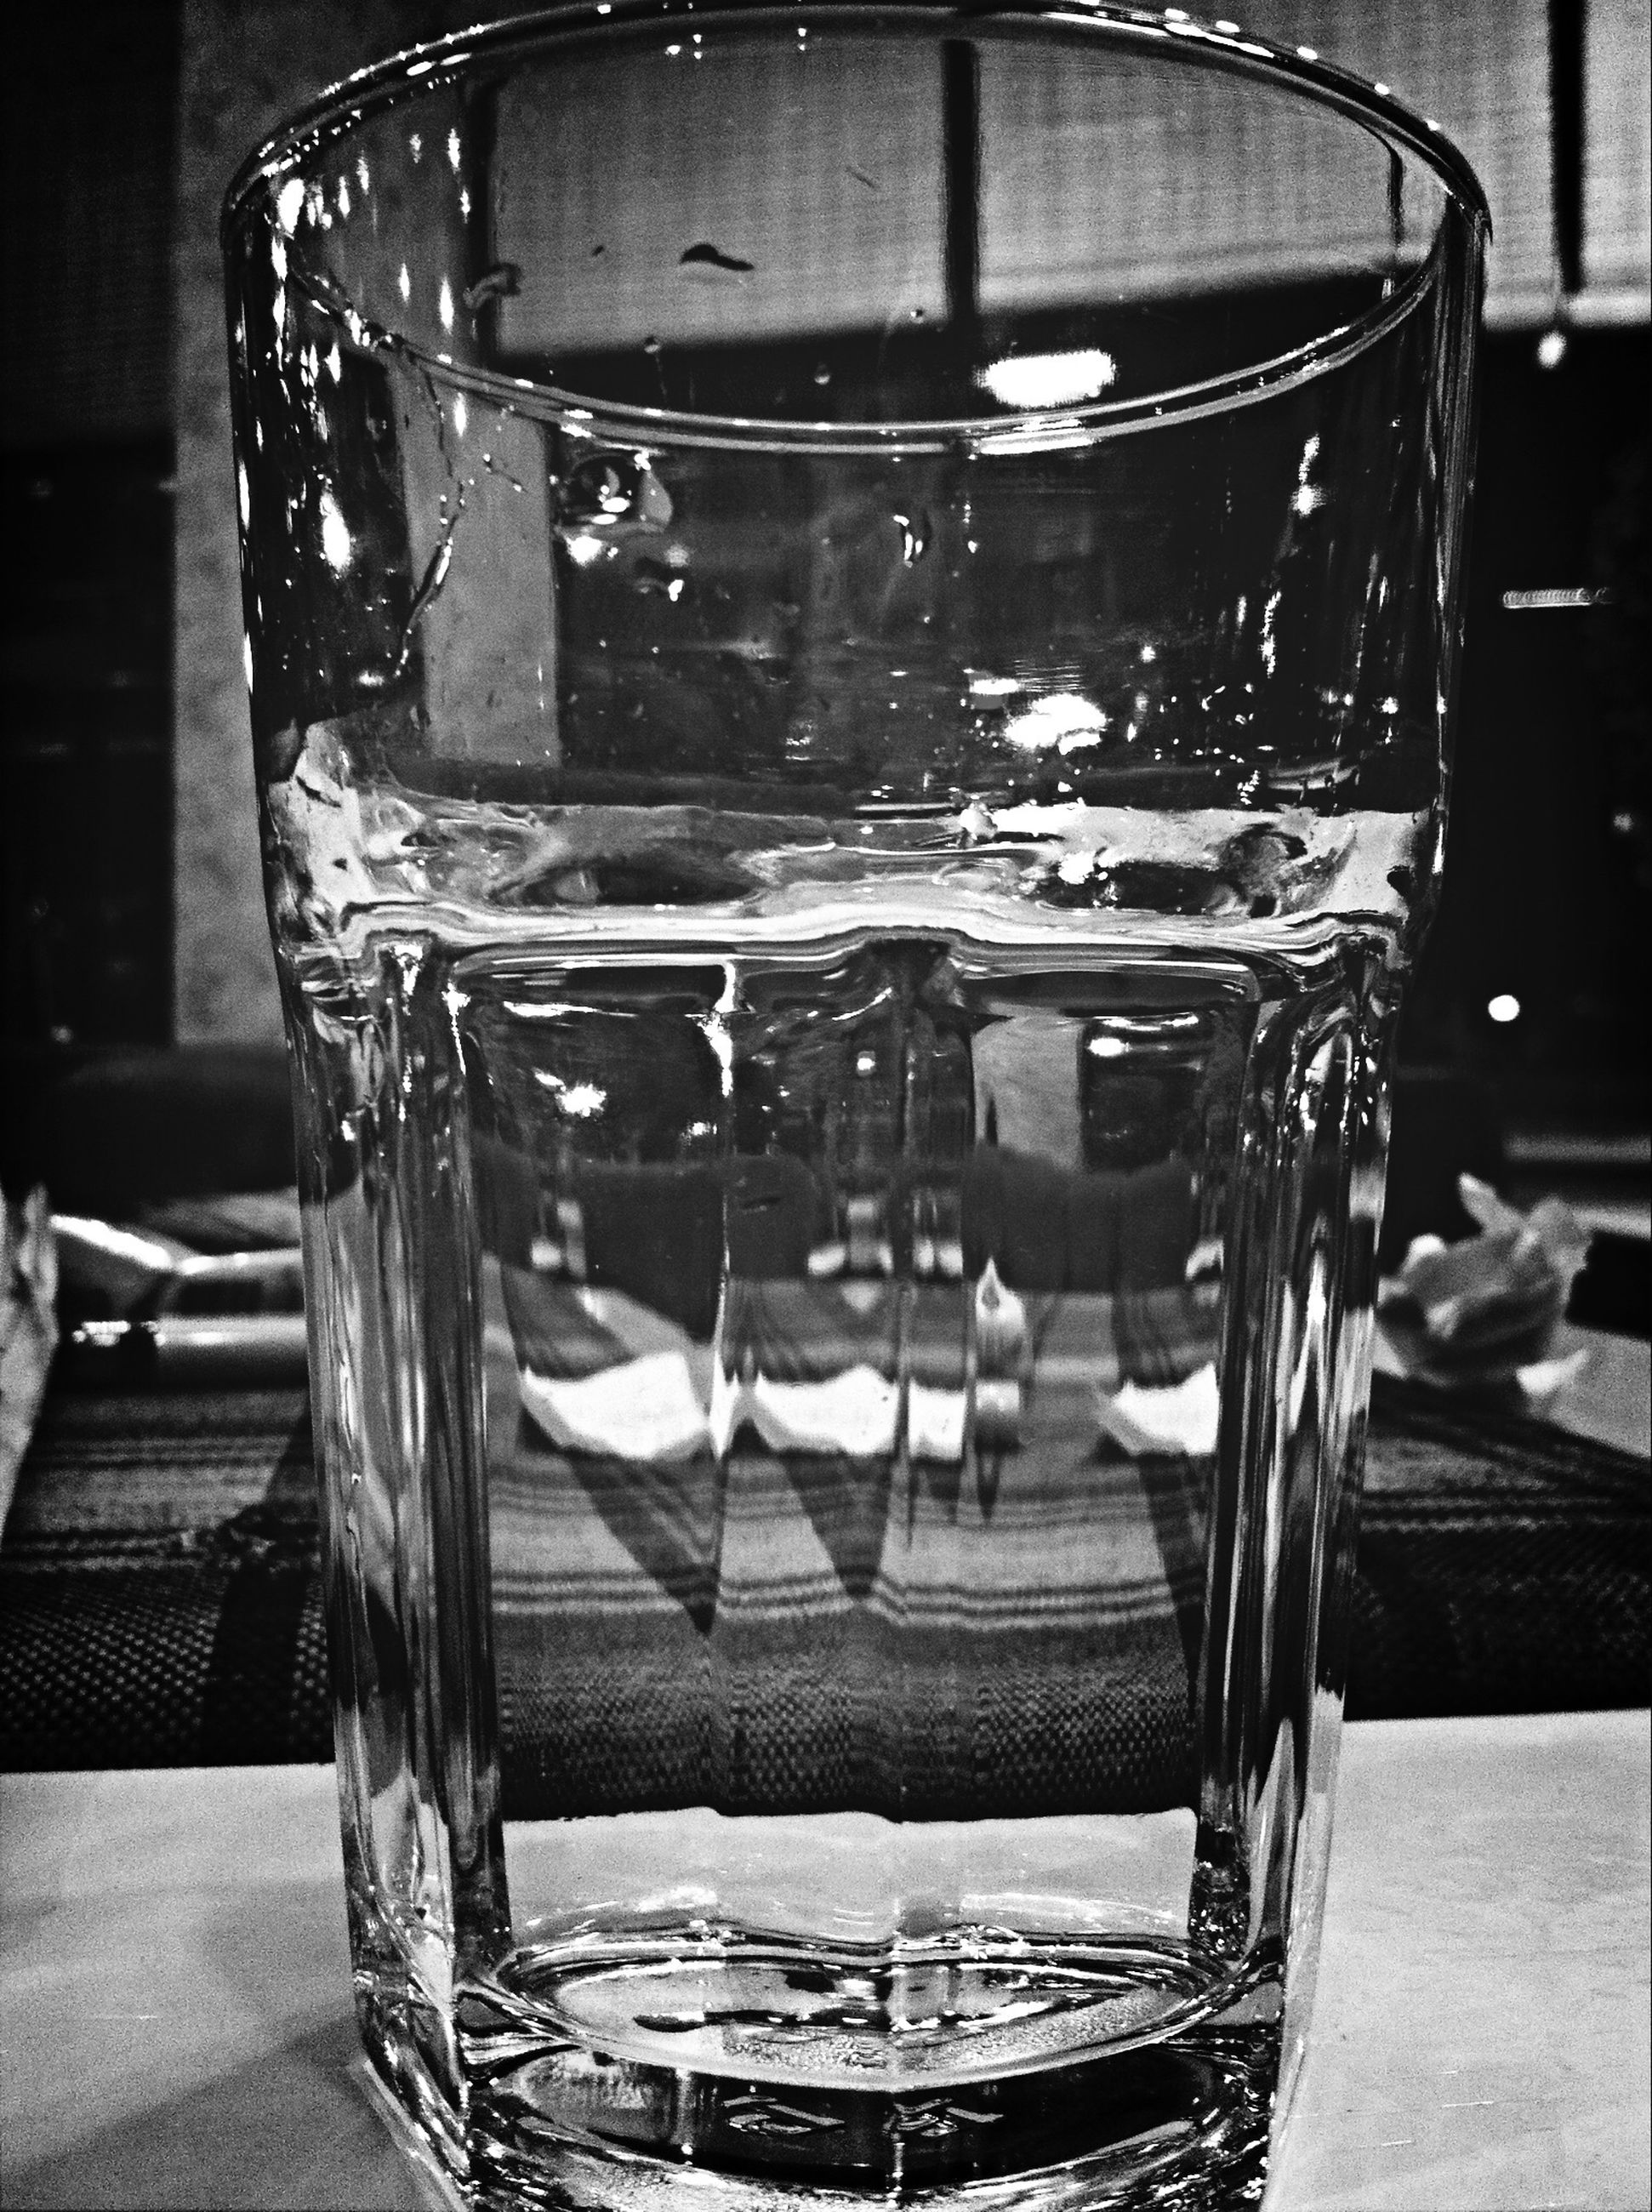 glass - material, indoors, table, drinking glass, transparent, drink, still life, food and drink, glass, refreshment, restaurant, close-up, empty, reflection, no people, focus on foreground, window, day, chair, water